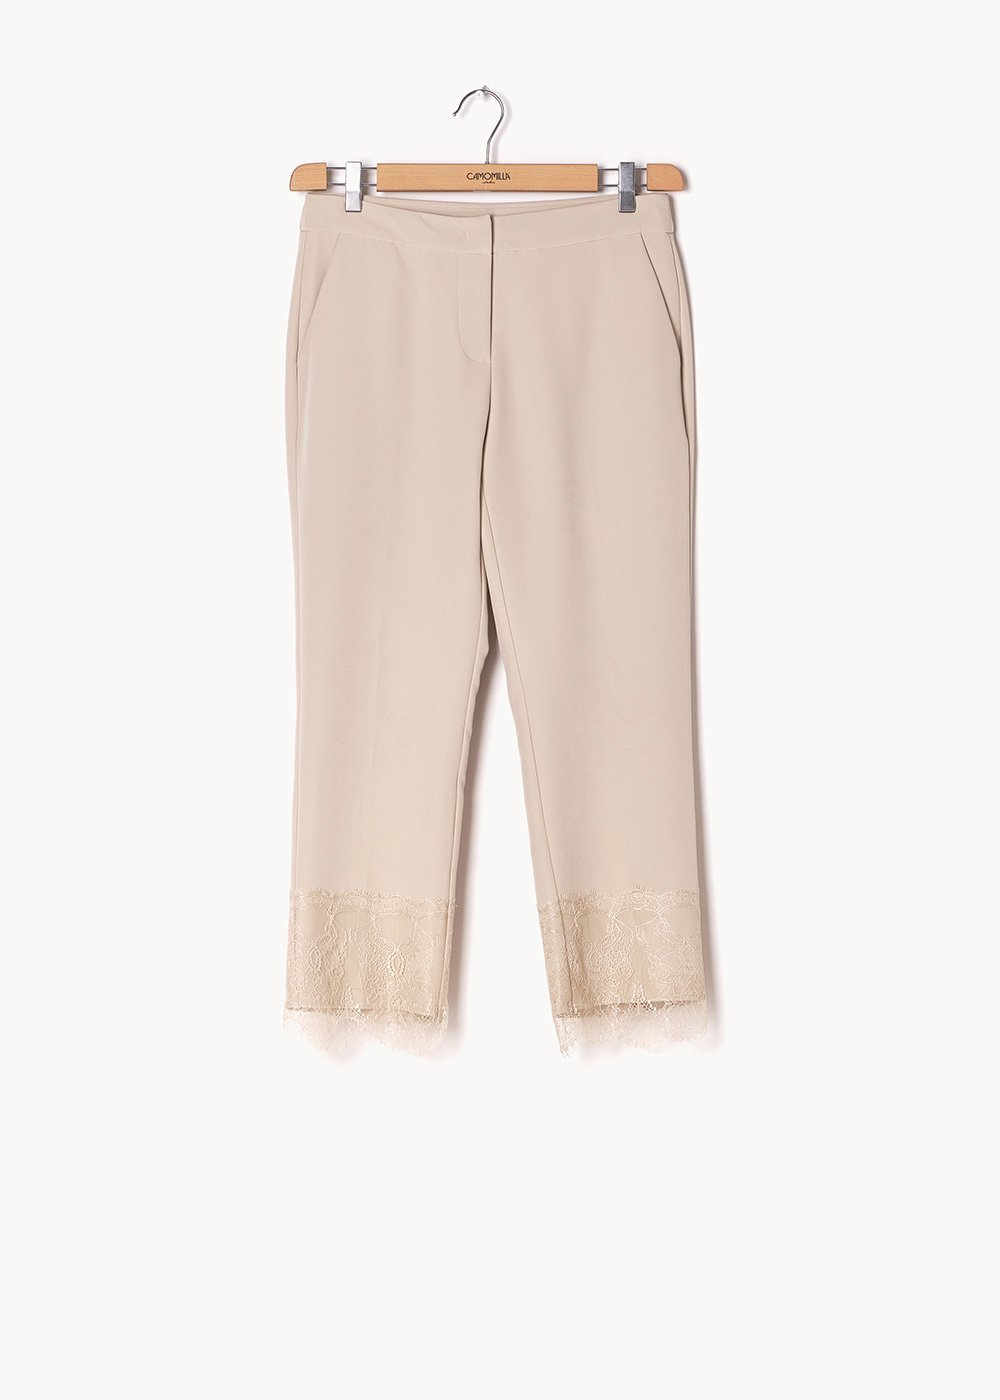 Palmer trousers with men's cut and lace at the bottom - Ginger - Woman